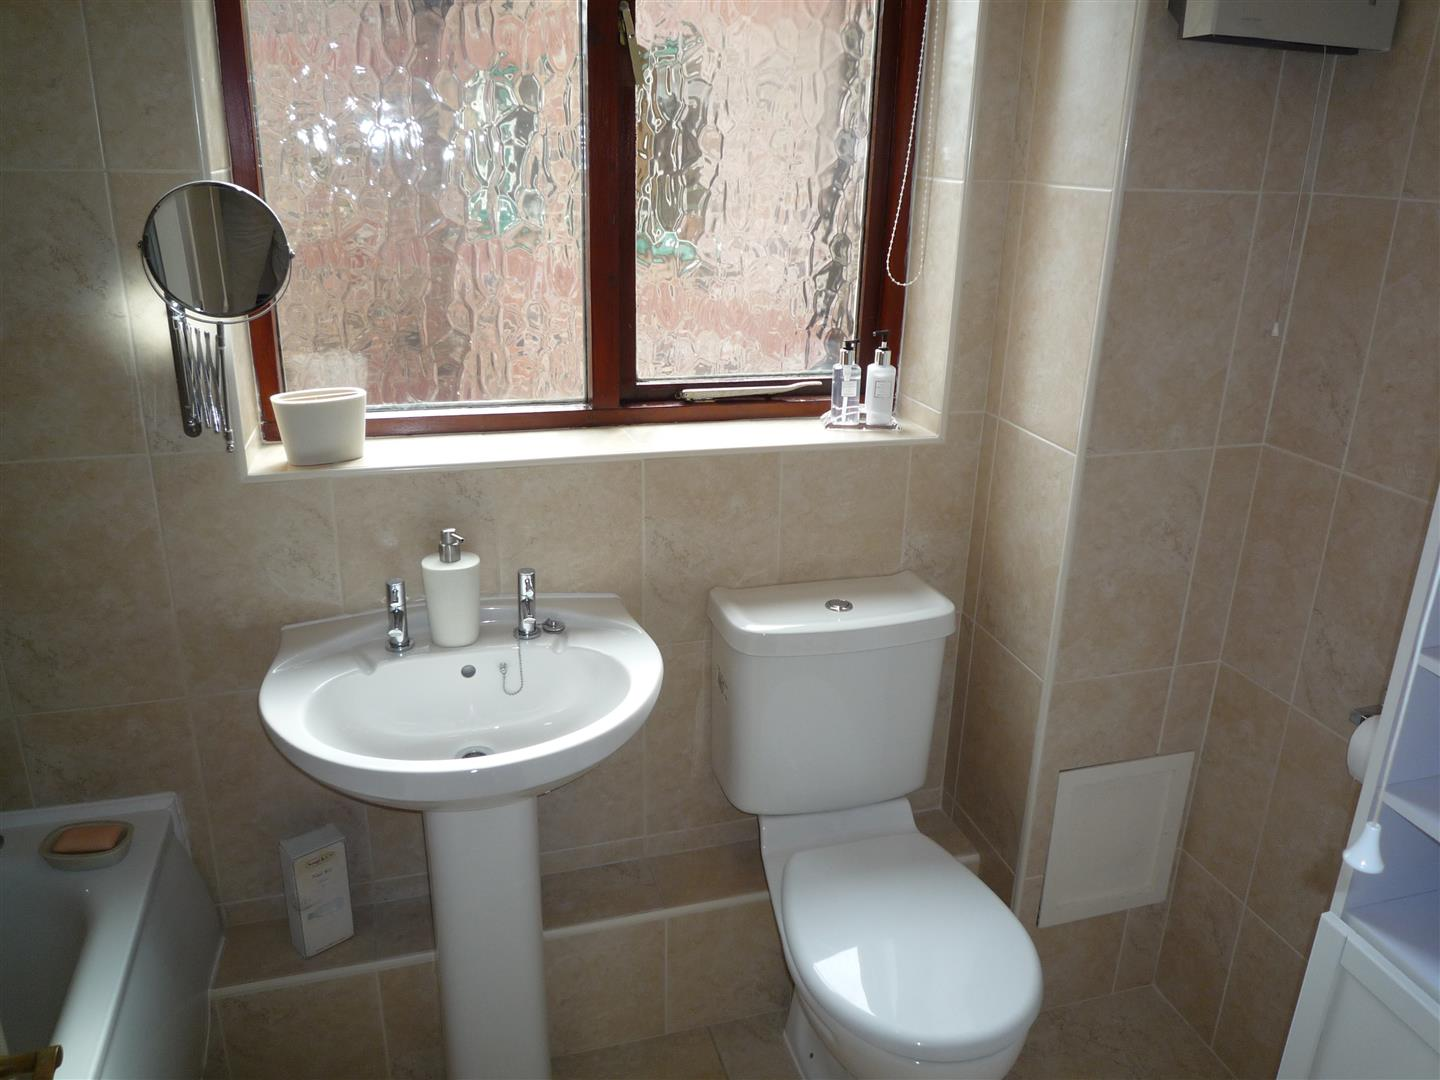 2 bed flat to rent in Long Sutton Spalding, PE12 9RL 4